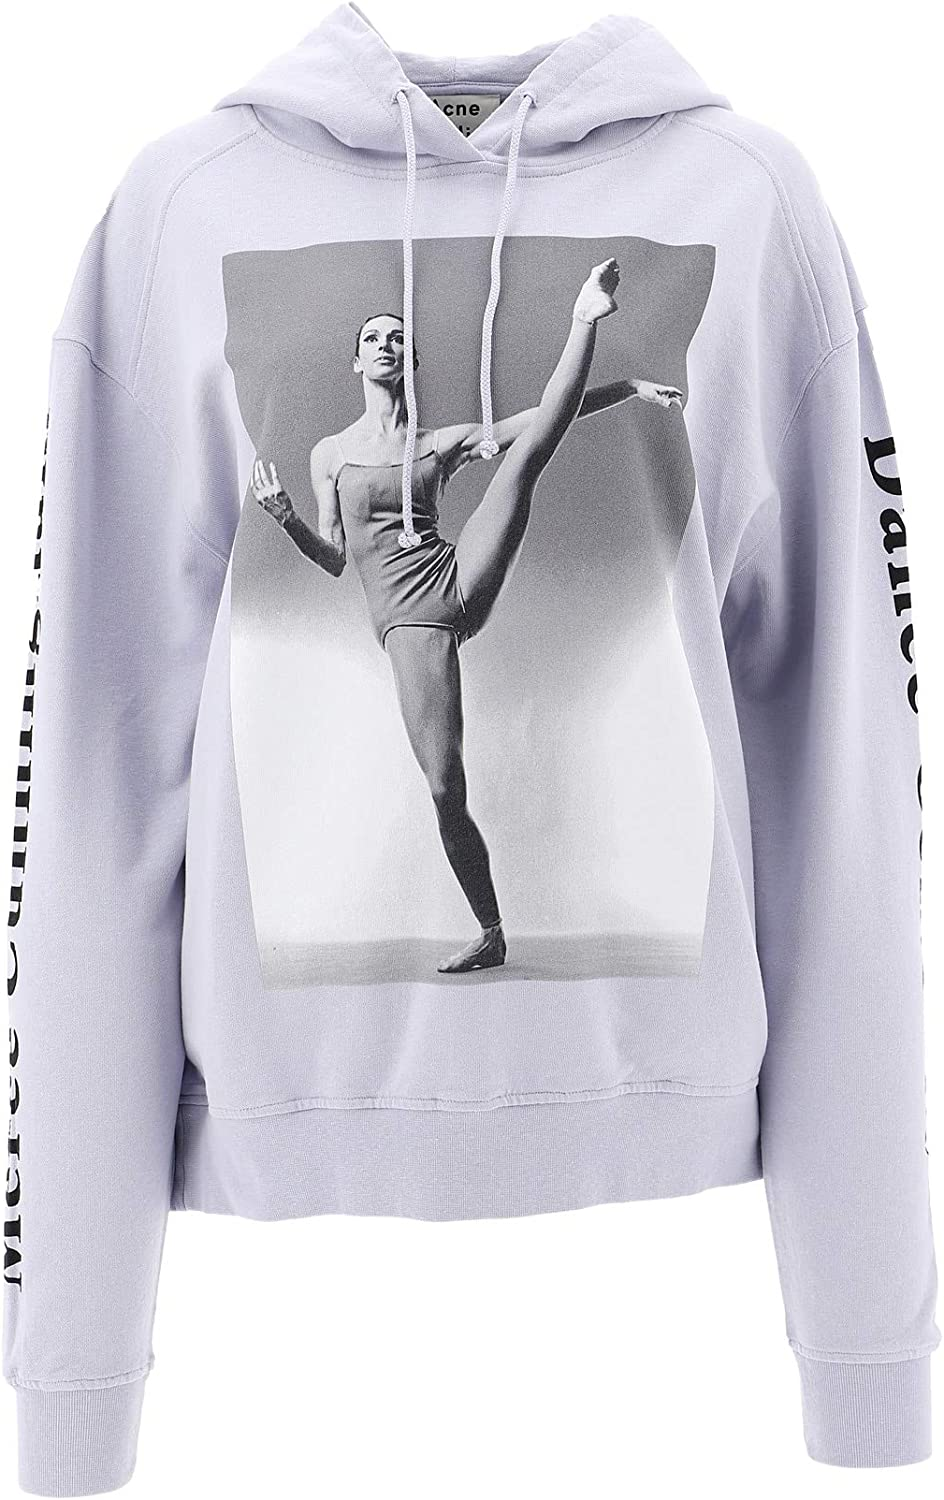 ACNE STUDIOS AI0023GREY Women's Grey Cotton Sweatshirt